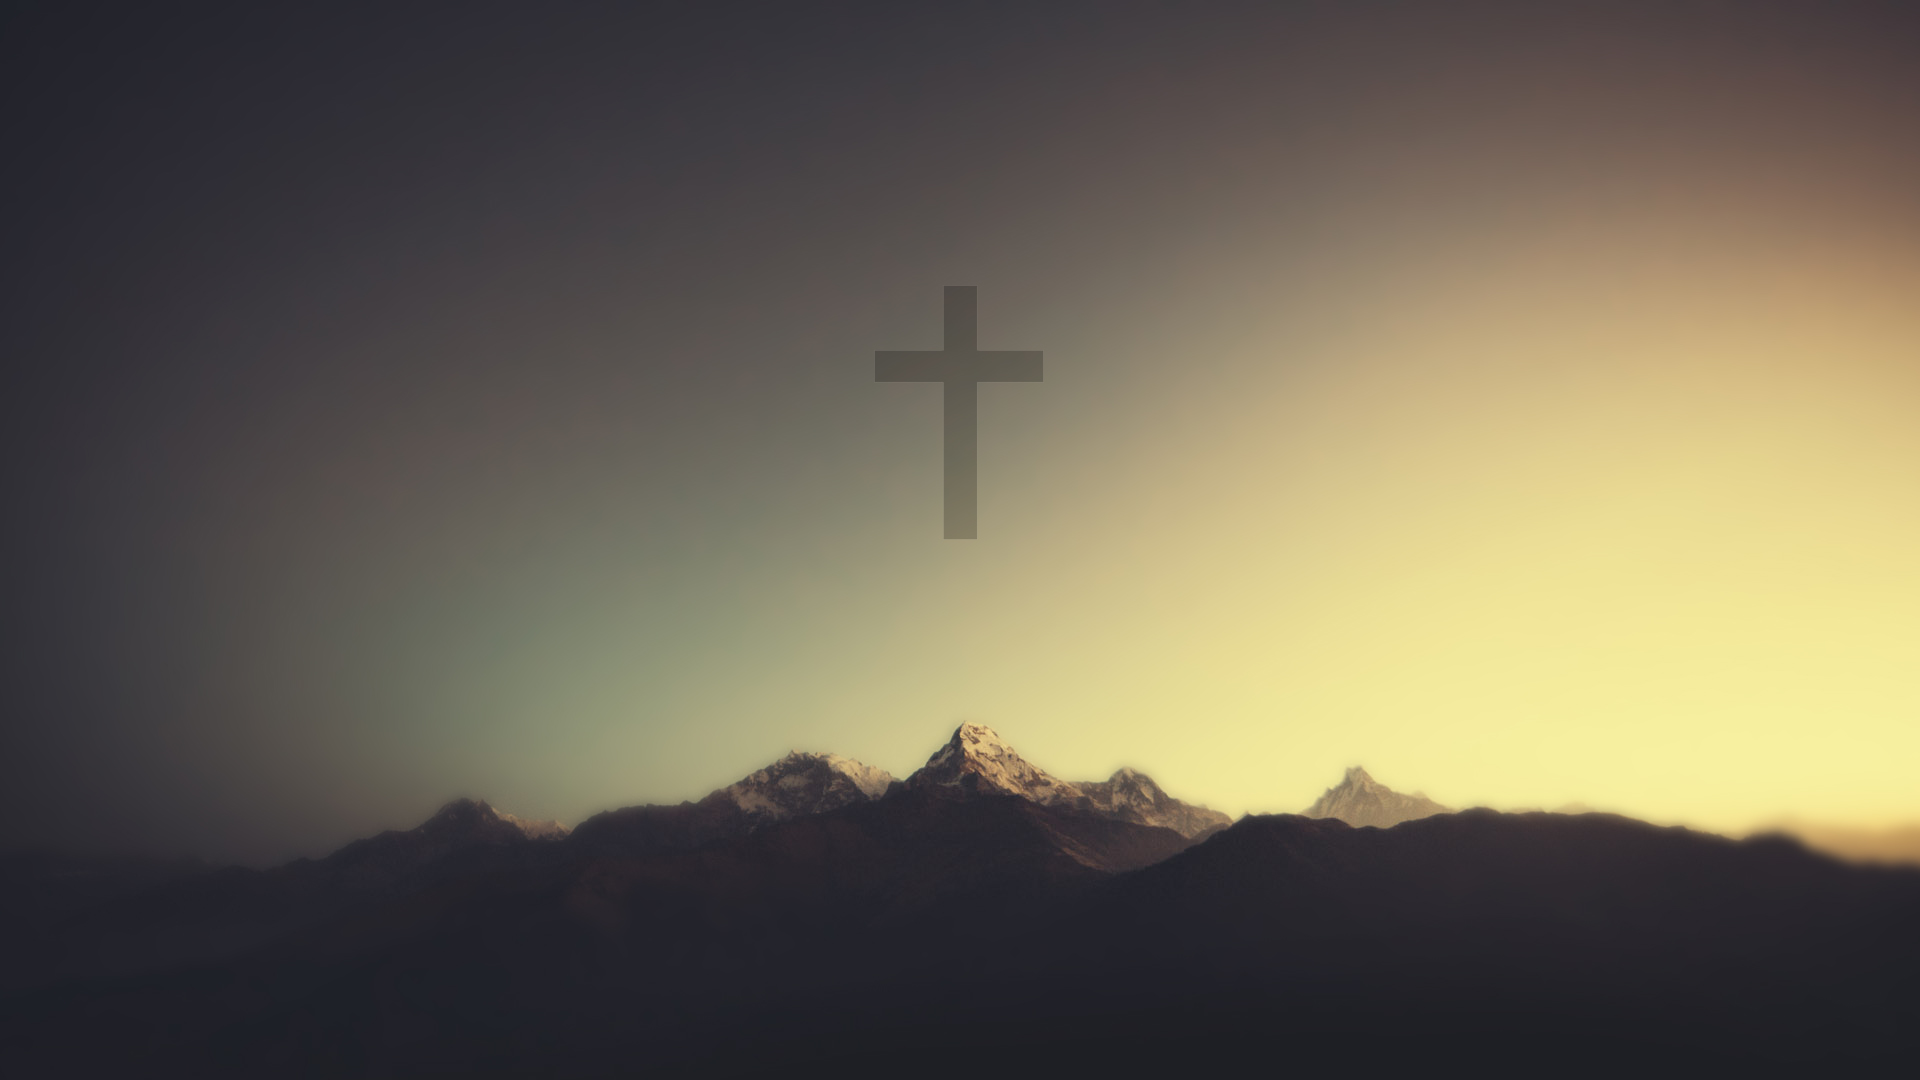 Religious cross wallpaper and backgrounds hd 1920x1080 voltagebd Images